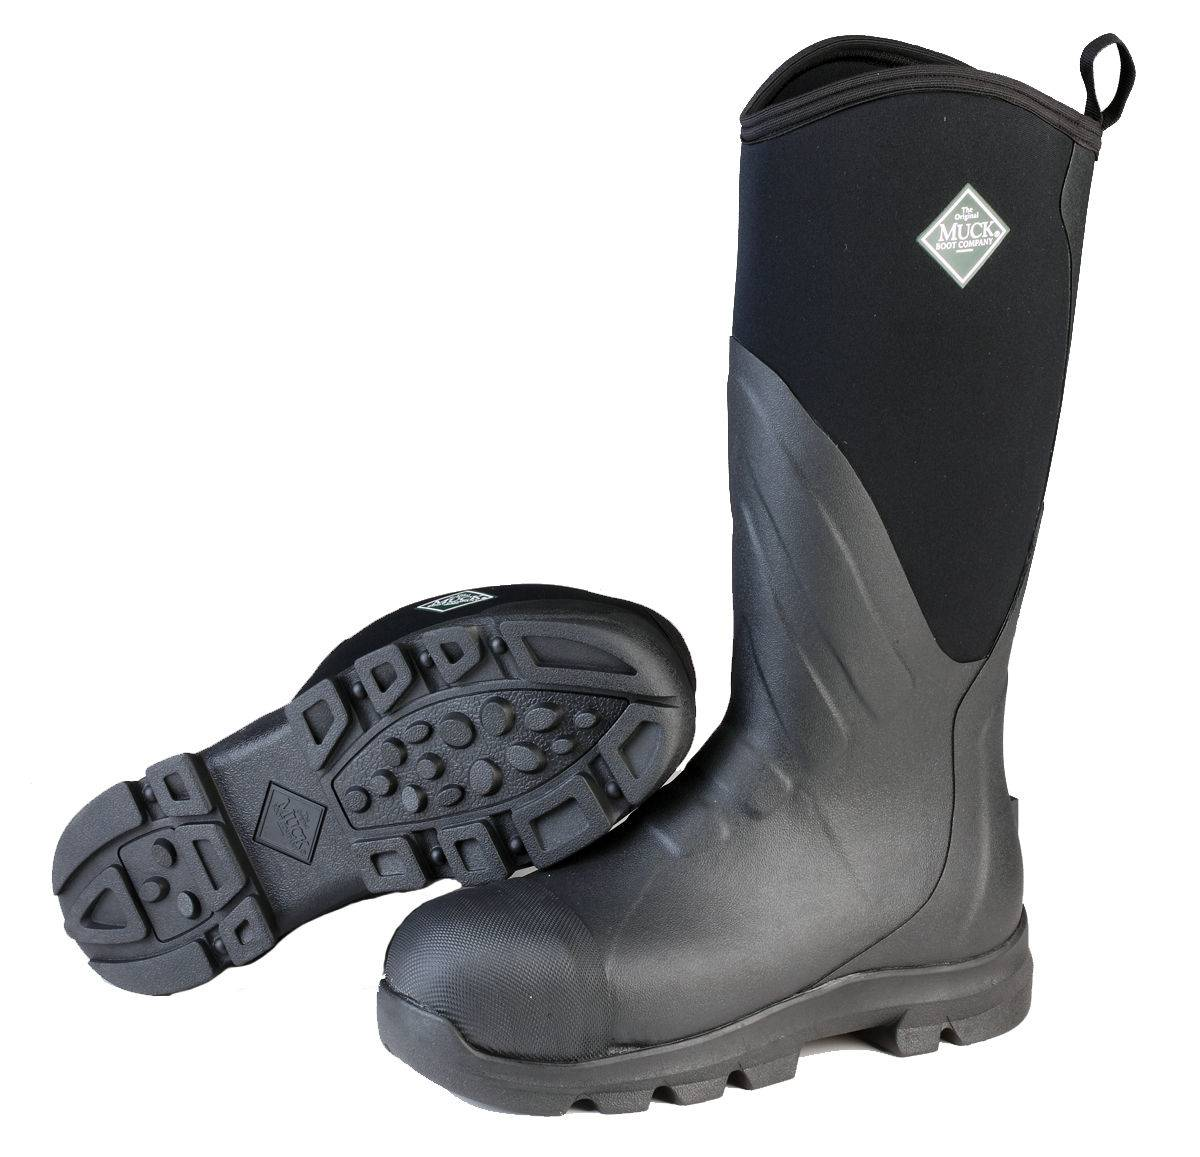 Muck Boots Men's Muck Grit Steel Toe - Black